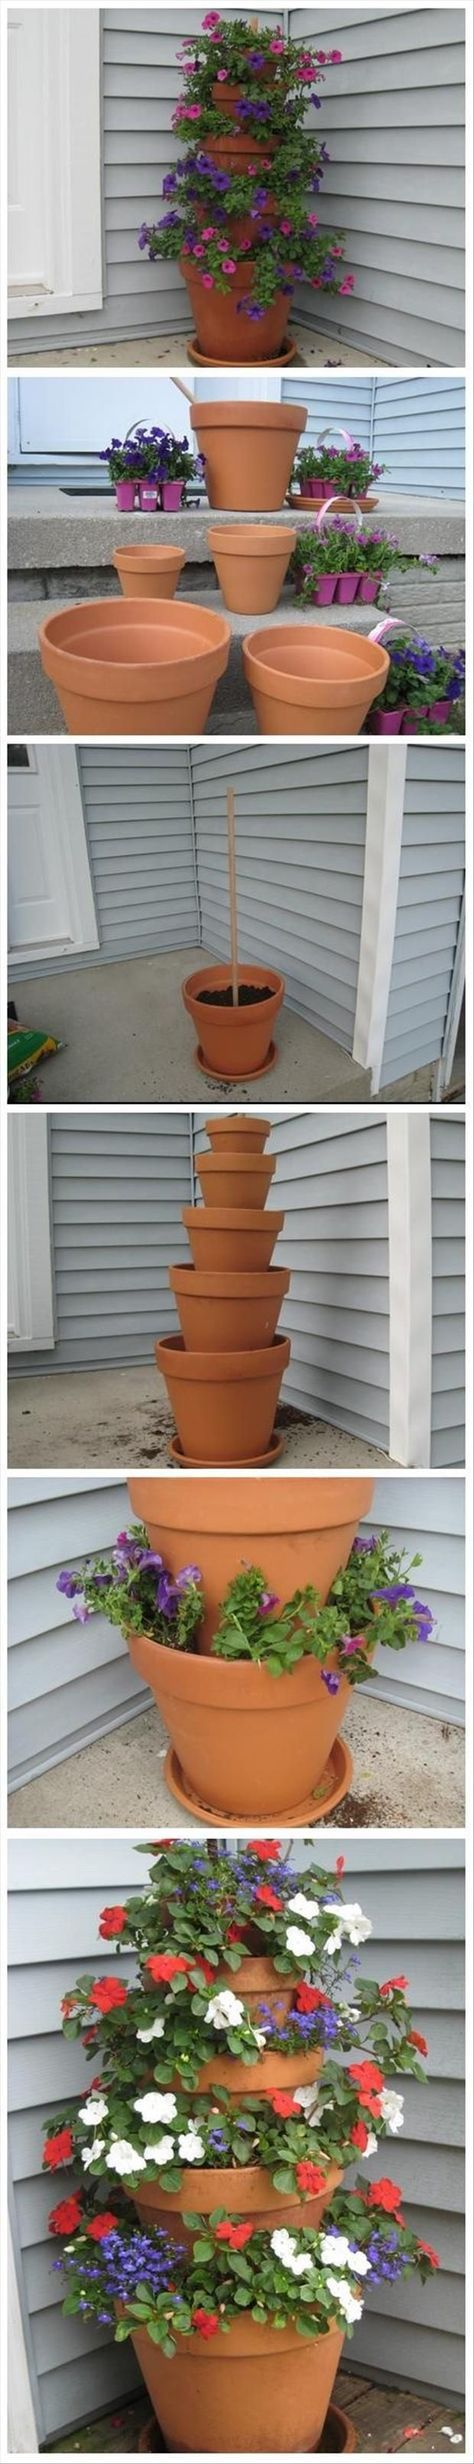 DIY Flower Tower.  16 Cool DIY Flower Tower Ideas--> http://coolcreativity.com/handcraft/cool-diy-flower-tower-ideas/  #Garden #Flower #Tower #Planter